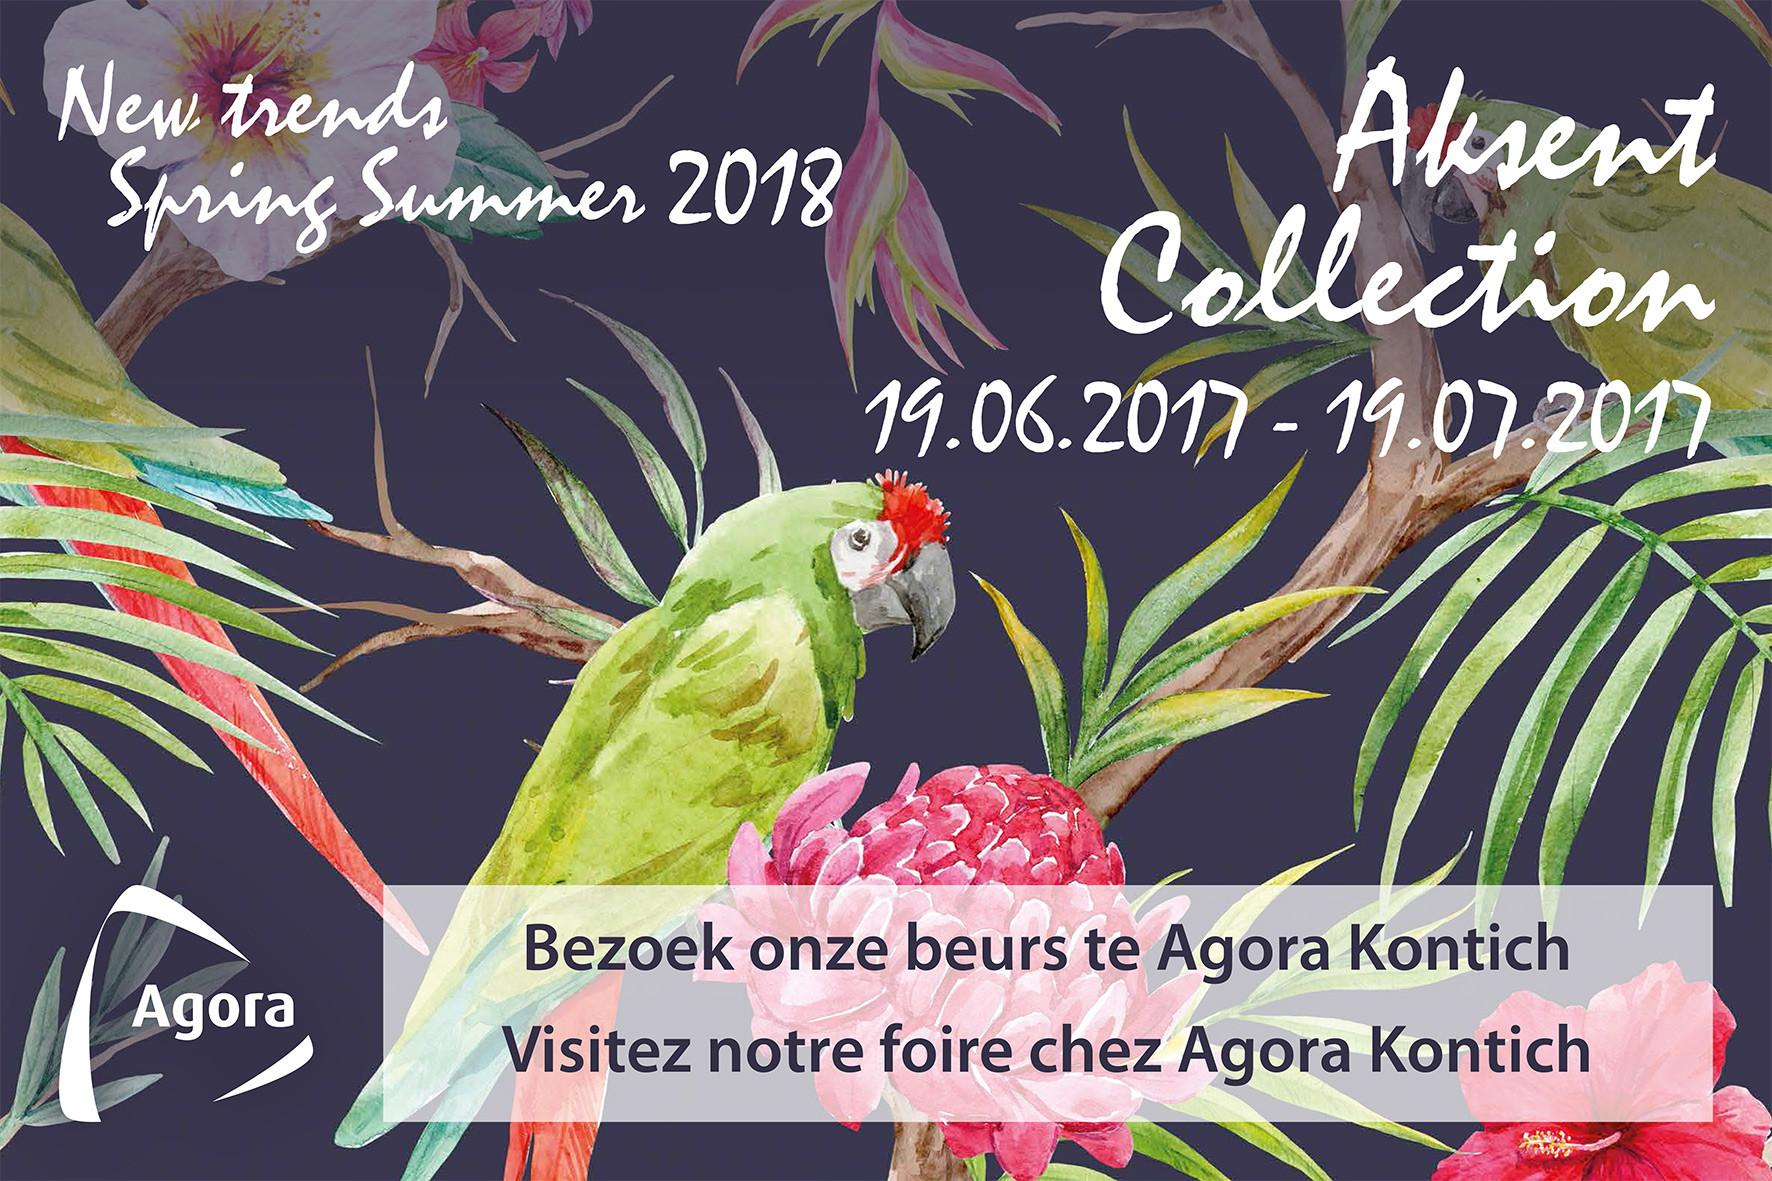 Aksent Collection Spring Summer 2018 Agora Group